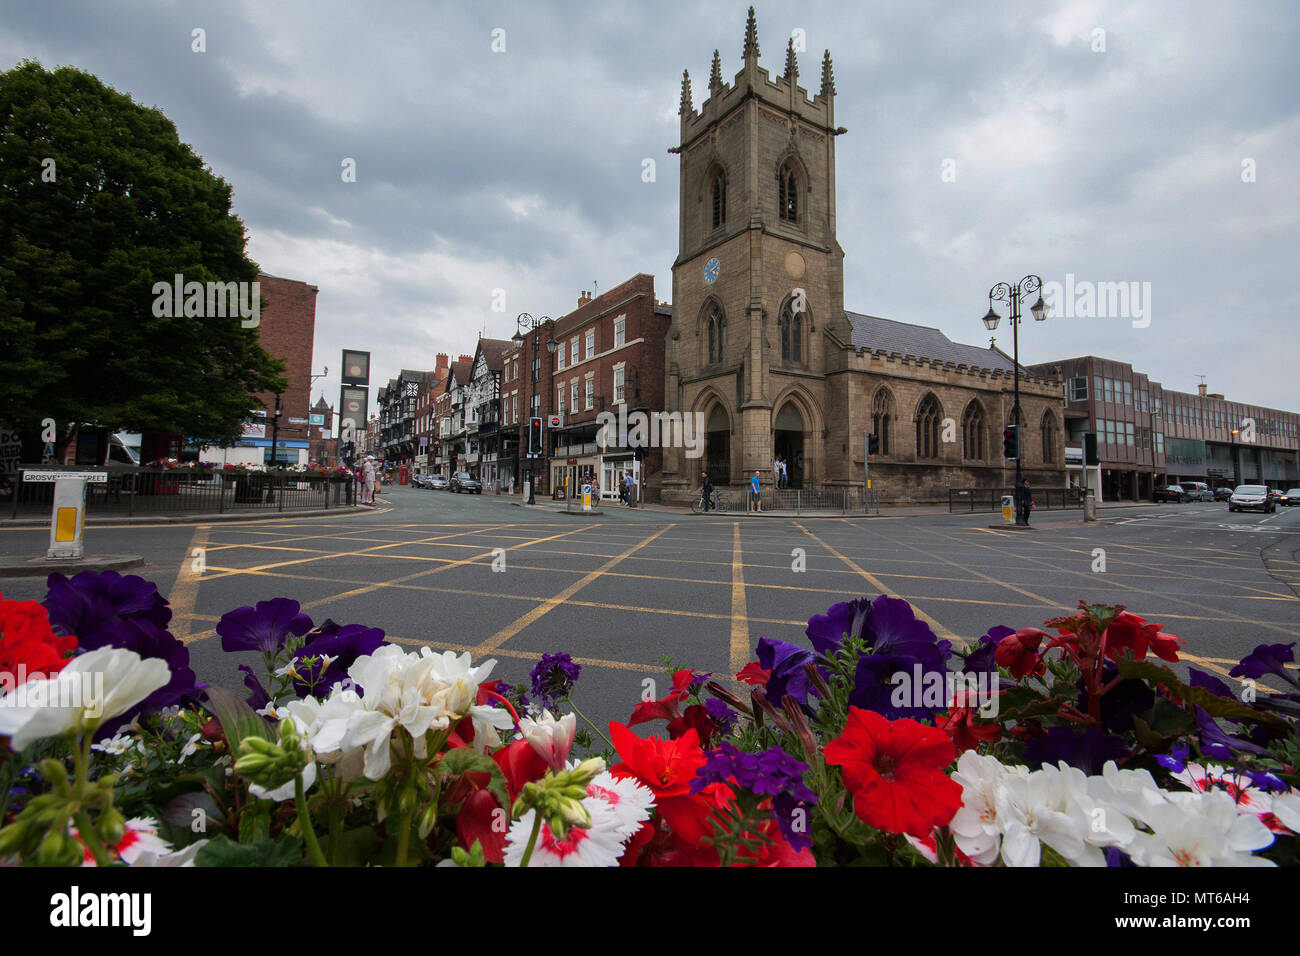 Chester History & Heritage across the street with colorful flower arrangements in the foreground, in Chester, England, UK. - Stock Image